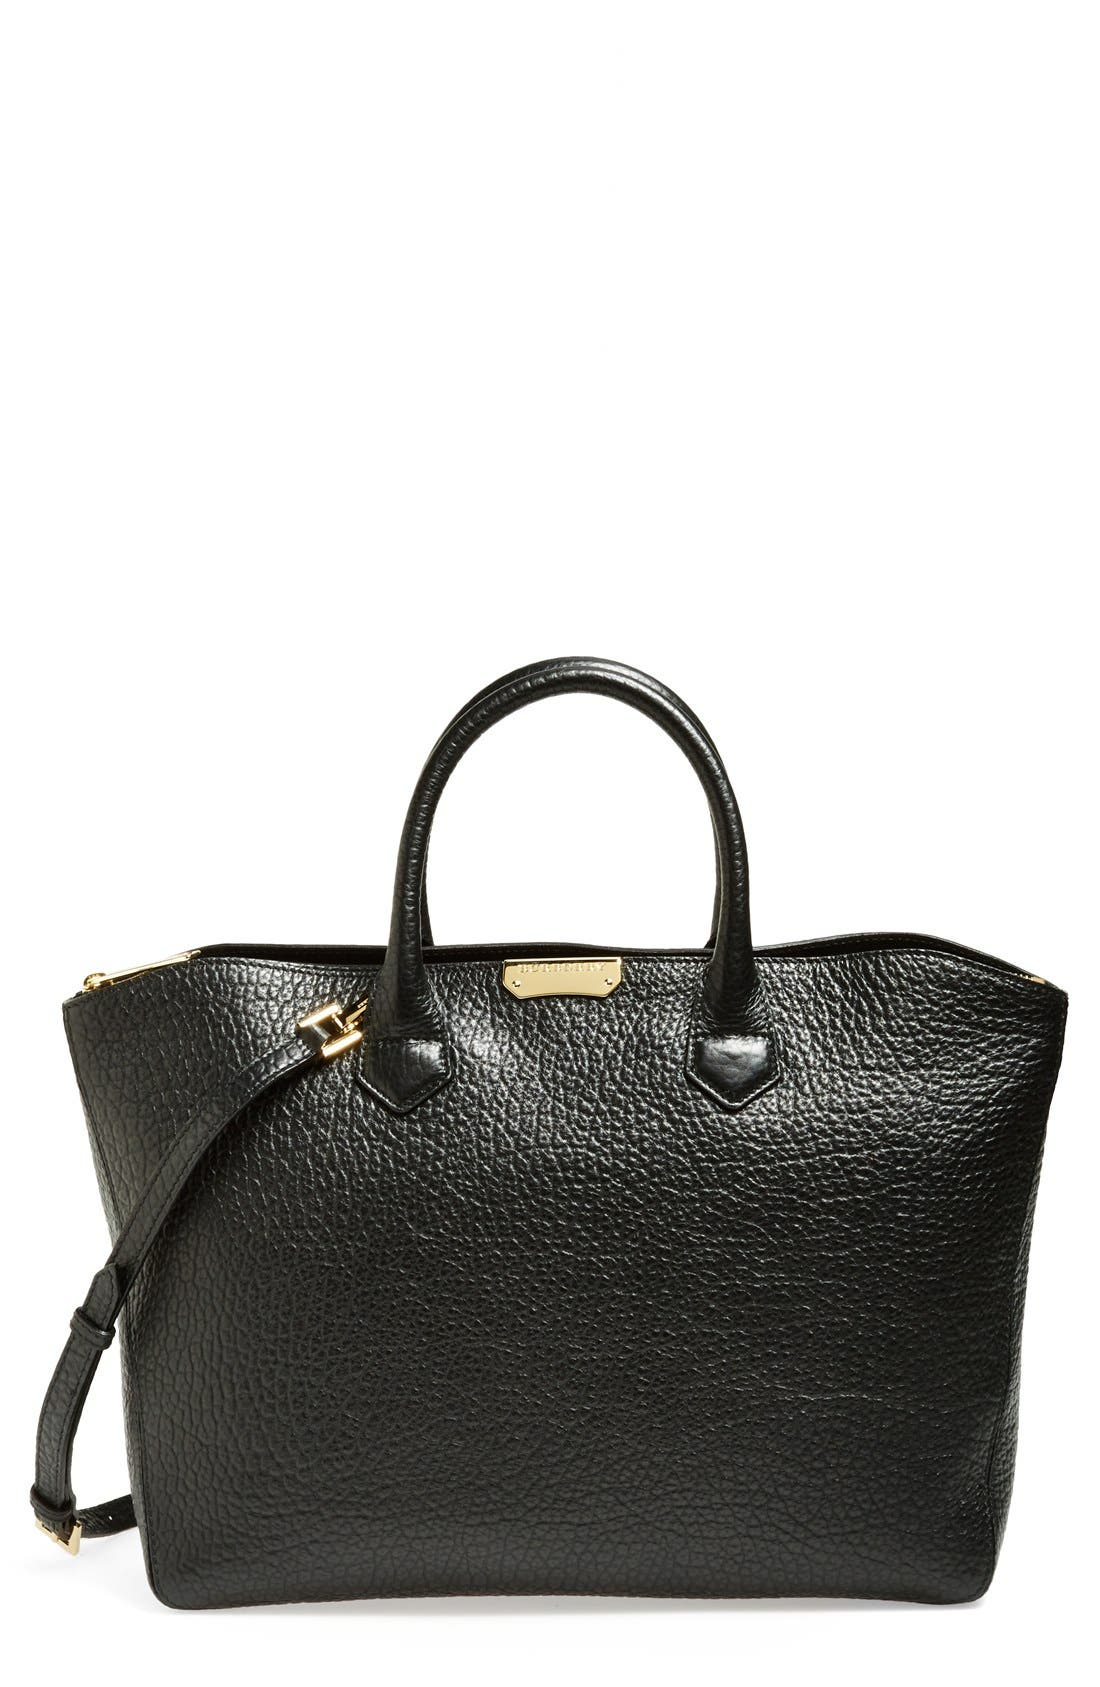 Alternate Image 1 Selected - Burberry 'Medium Dewsbury' Tote